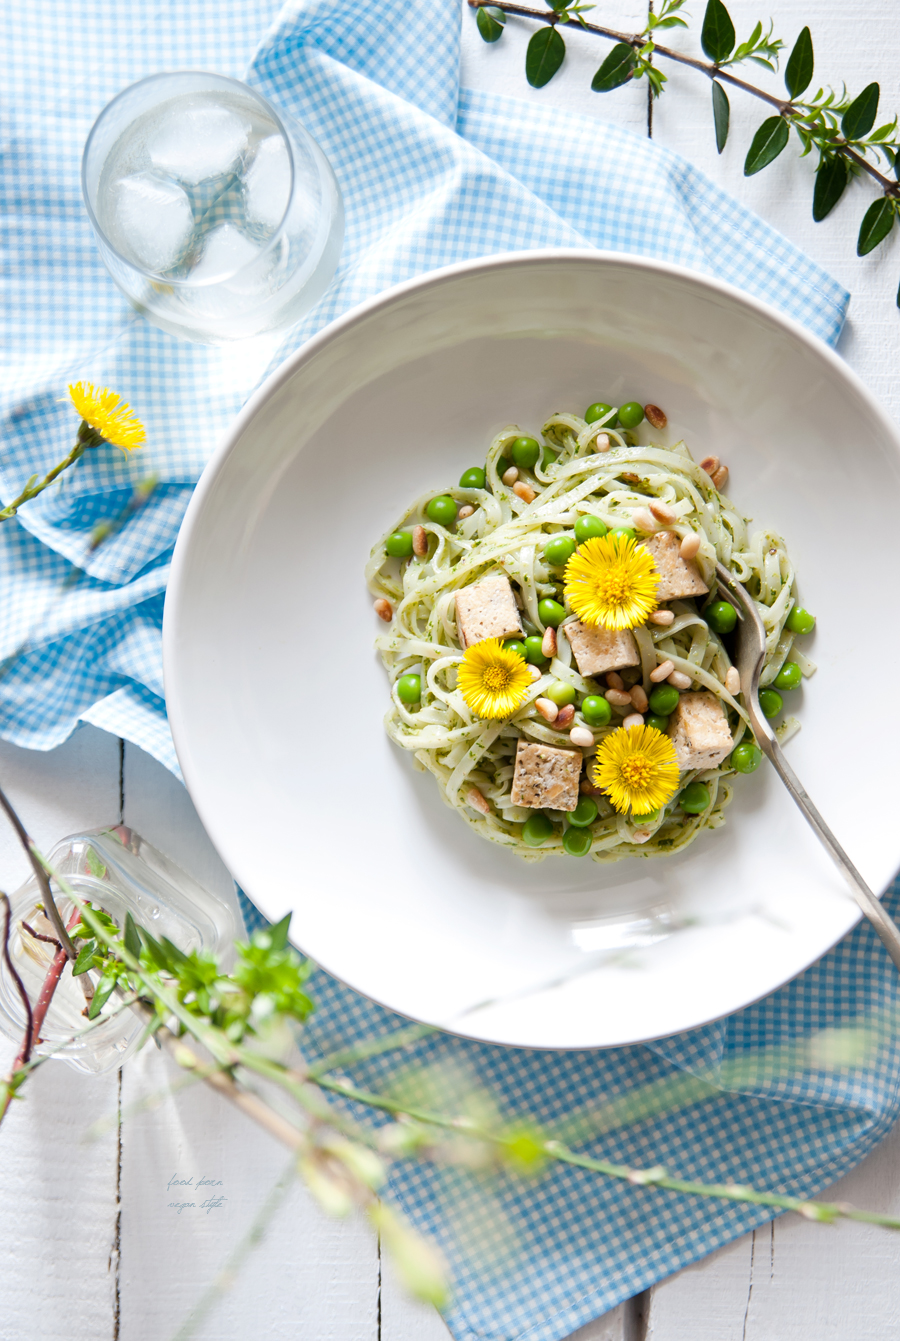 Spring noodles with pesto,tofu,green peas and coltsfoot flowers